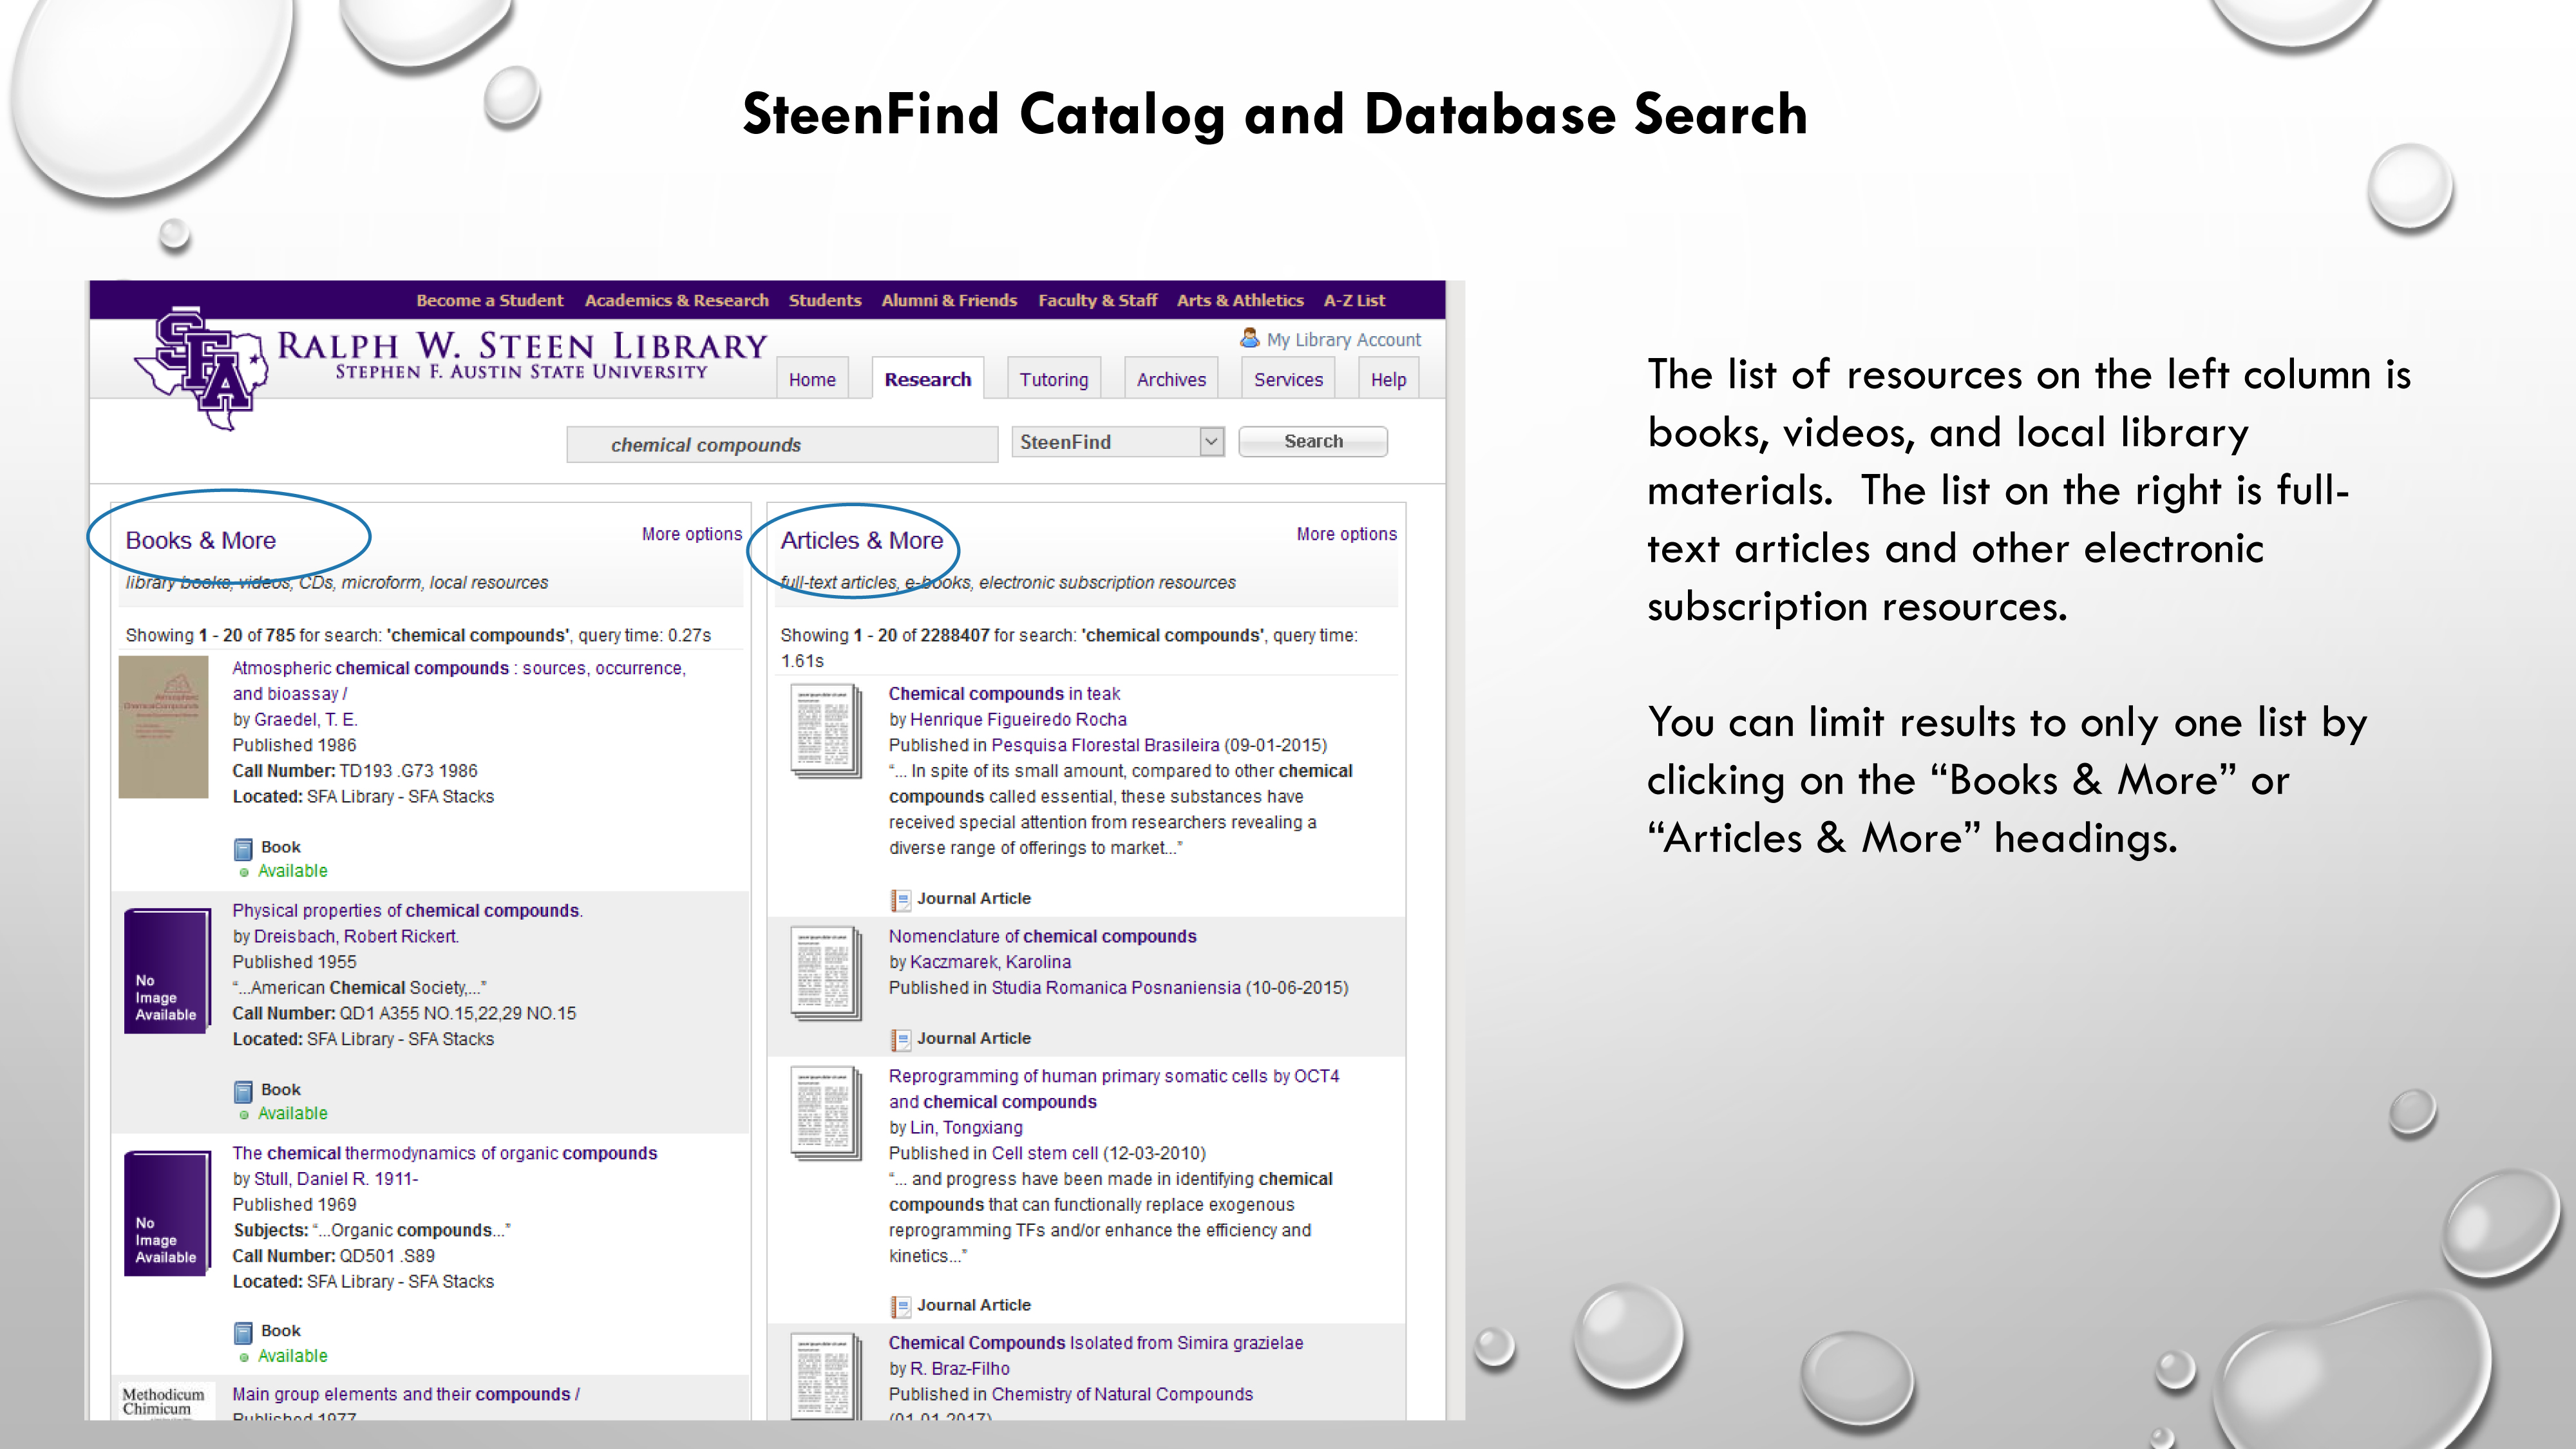 SteenFind Catalog and Database Search